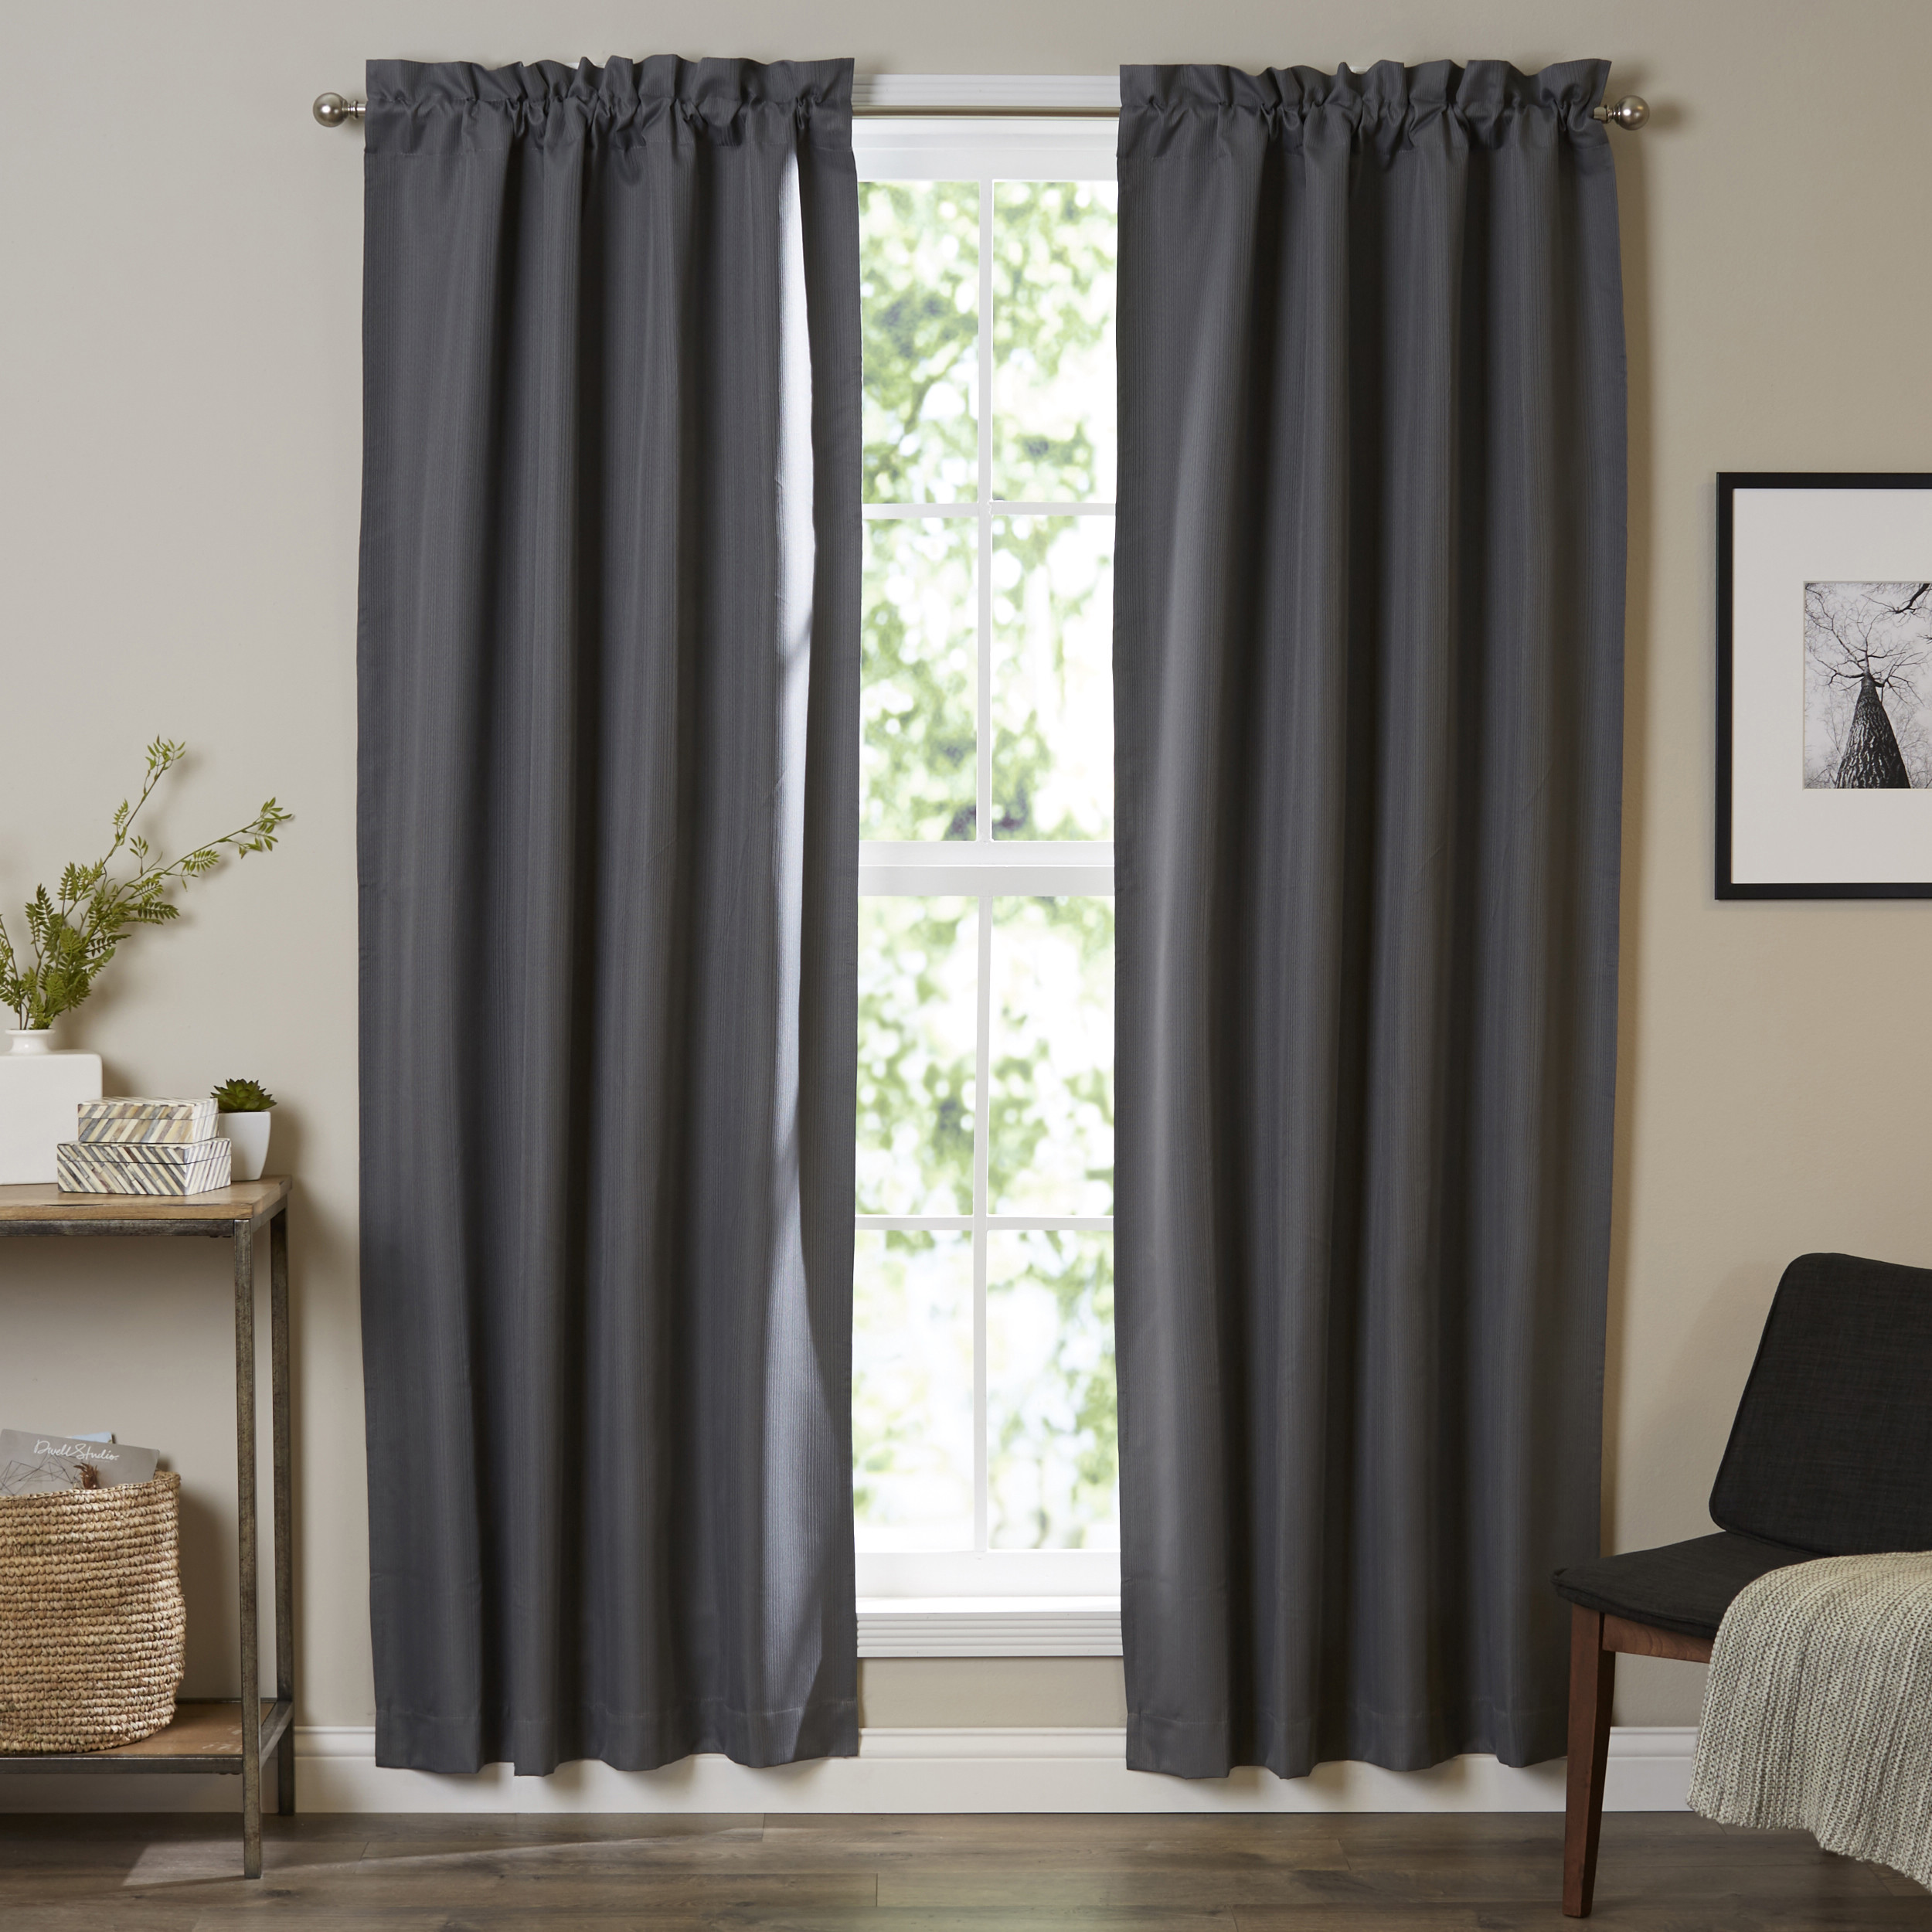 Bedroom Curtains Target | Soundproof Curtains Target | Blinds at Target